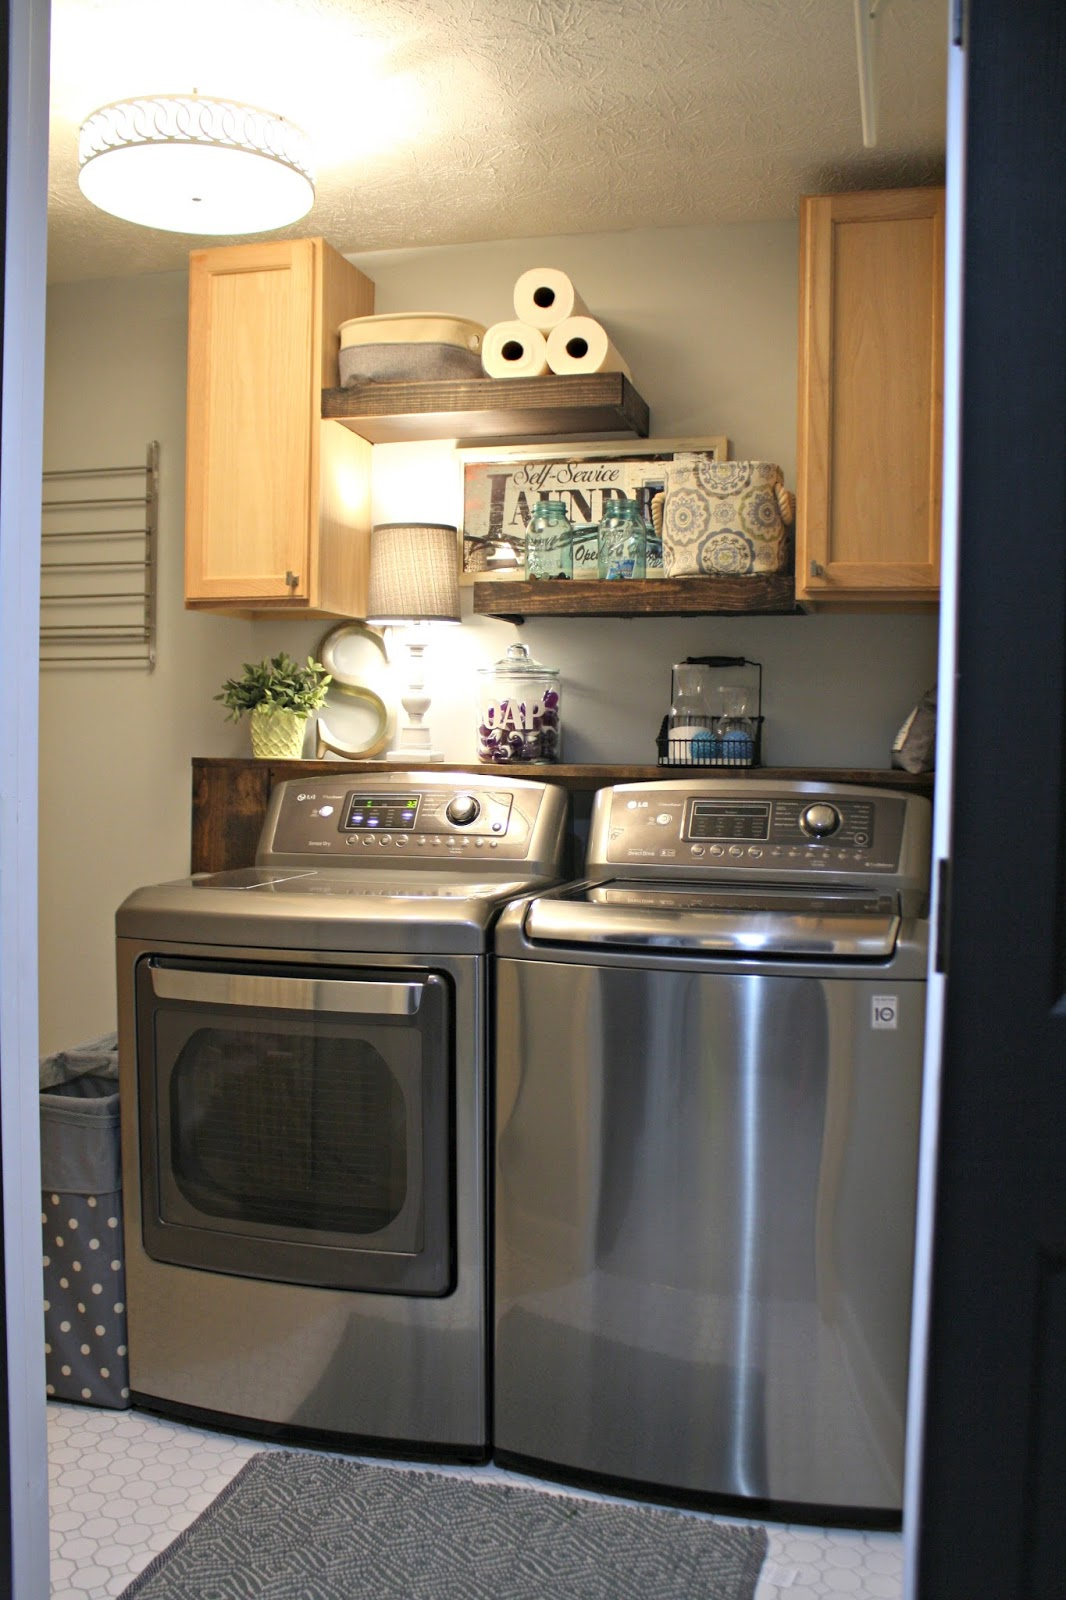 My five favorite household gadgets! from Thrifty Decor Chick